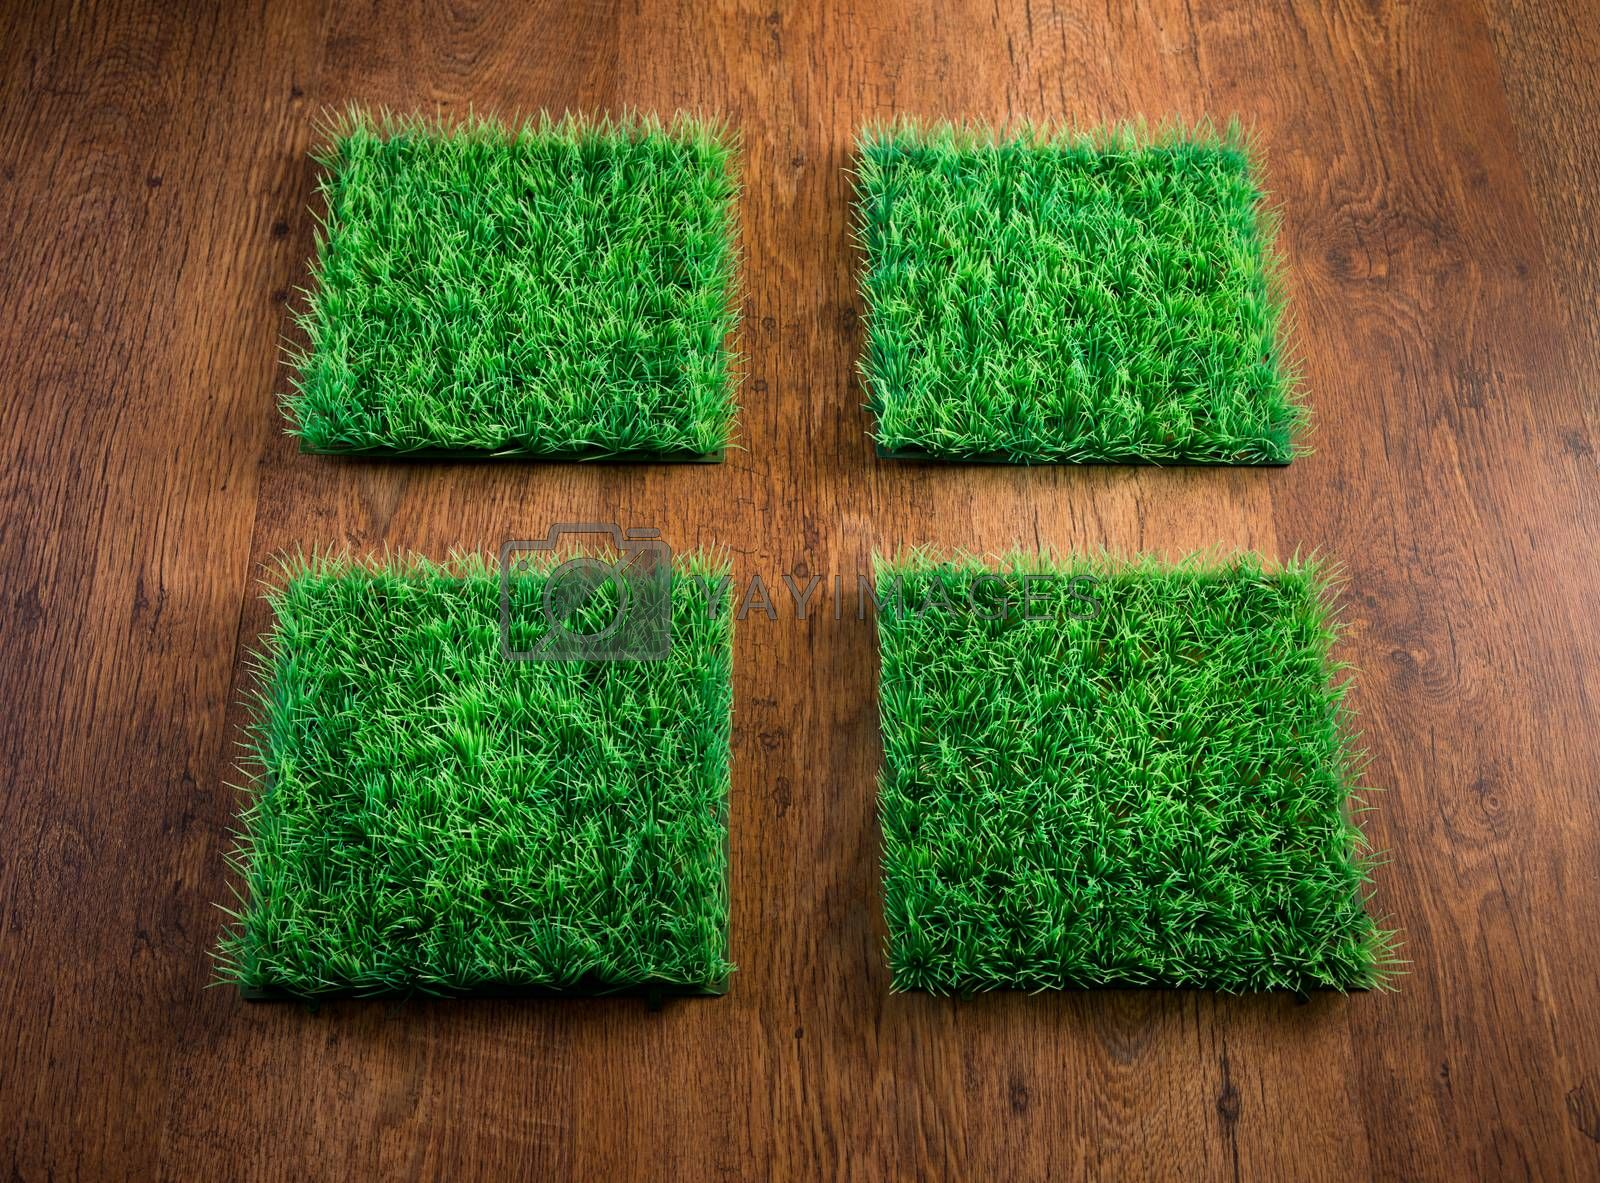 Artificial turf tiles by stokkete